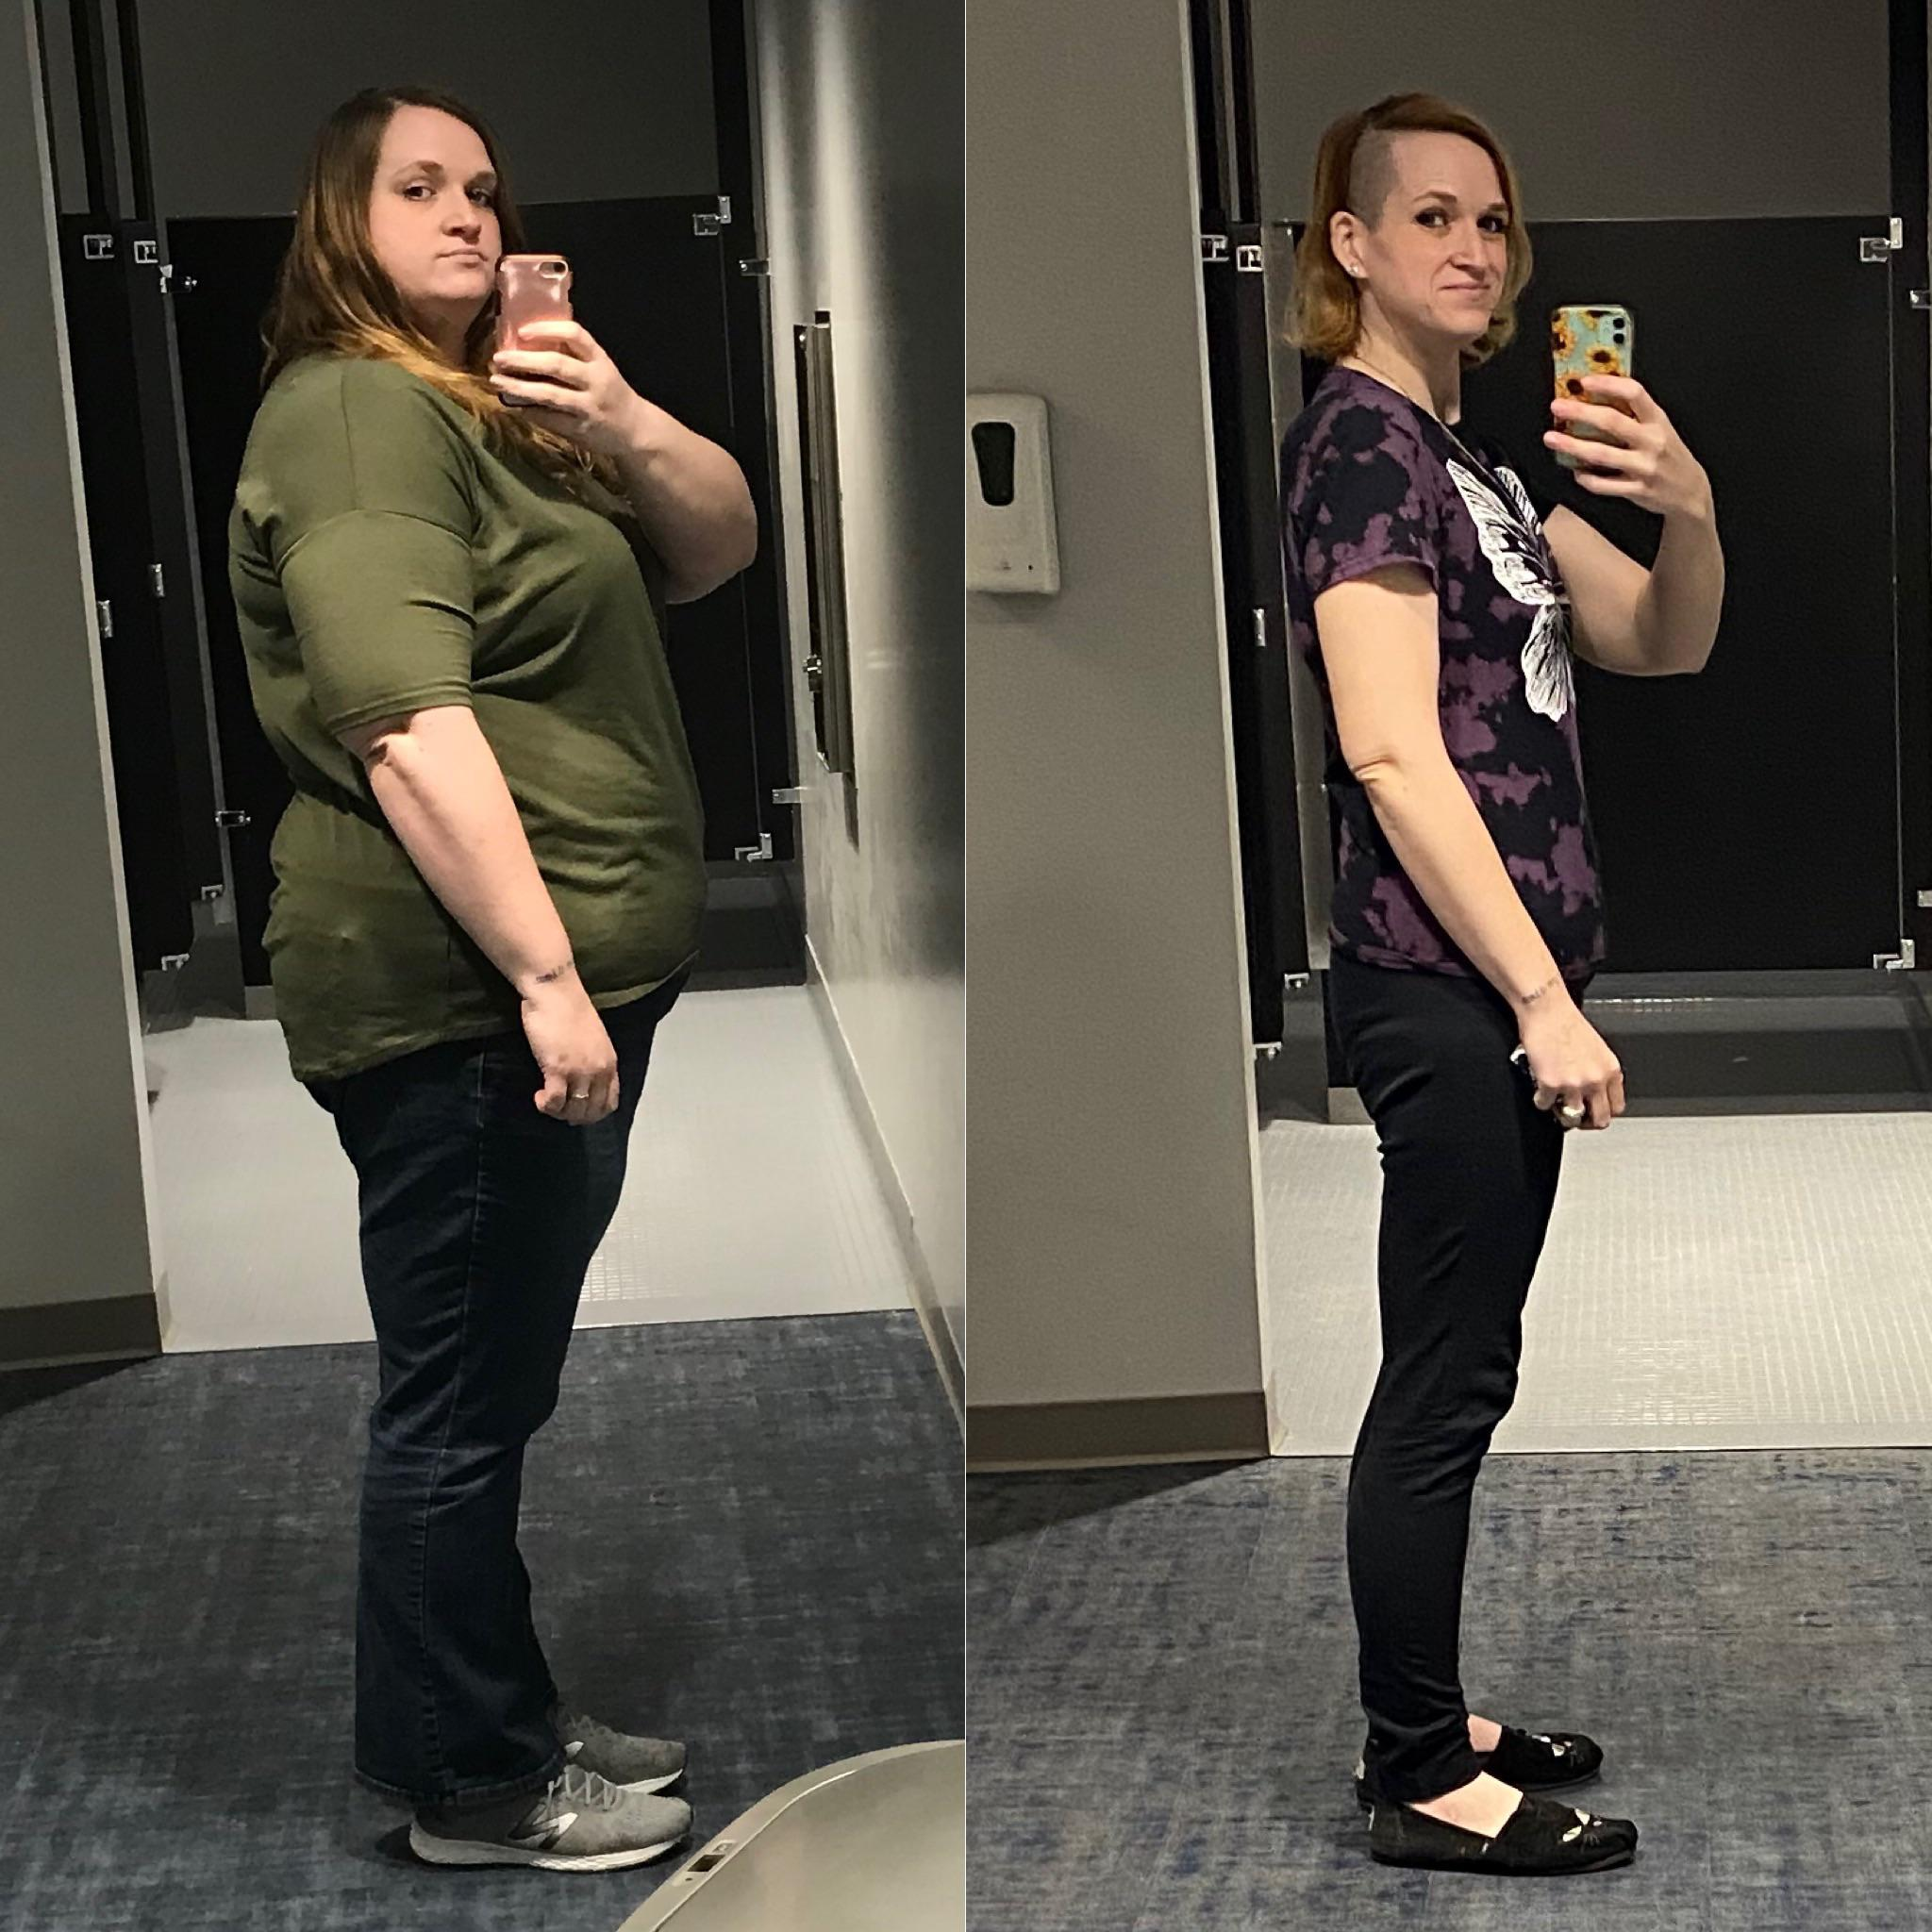 200 lbs Fat Loss Before and After 6 foot Female 370 lbs to 170 lbs